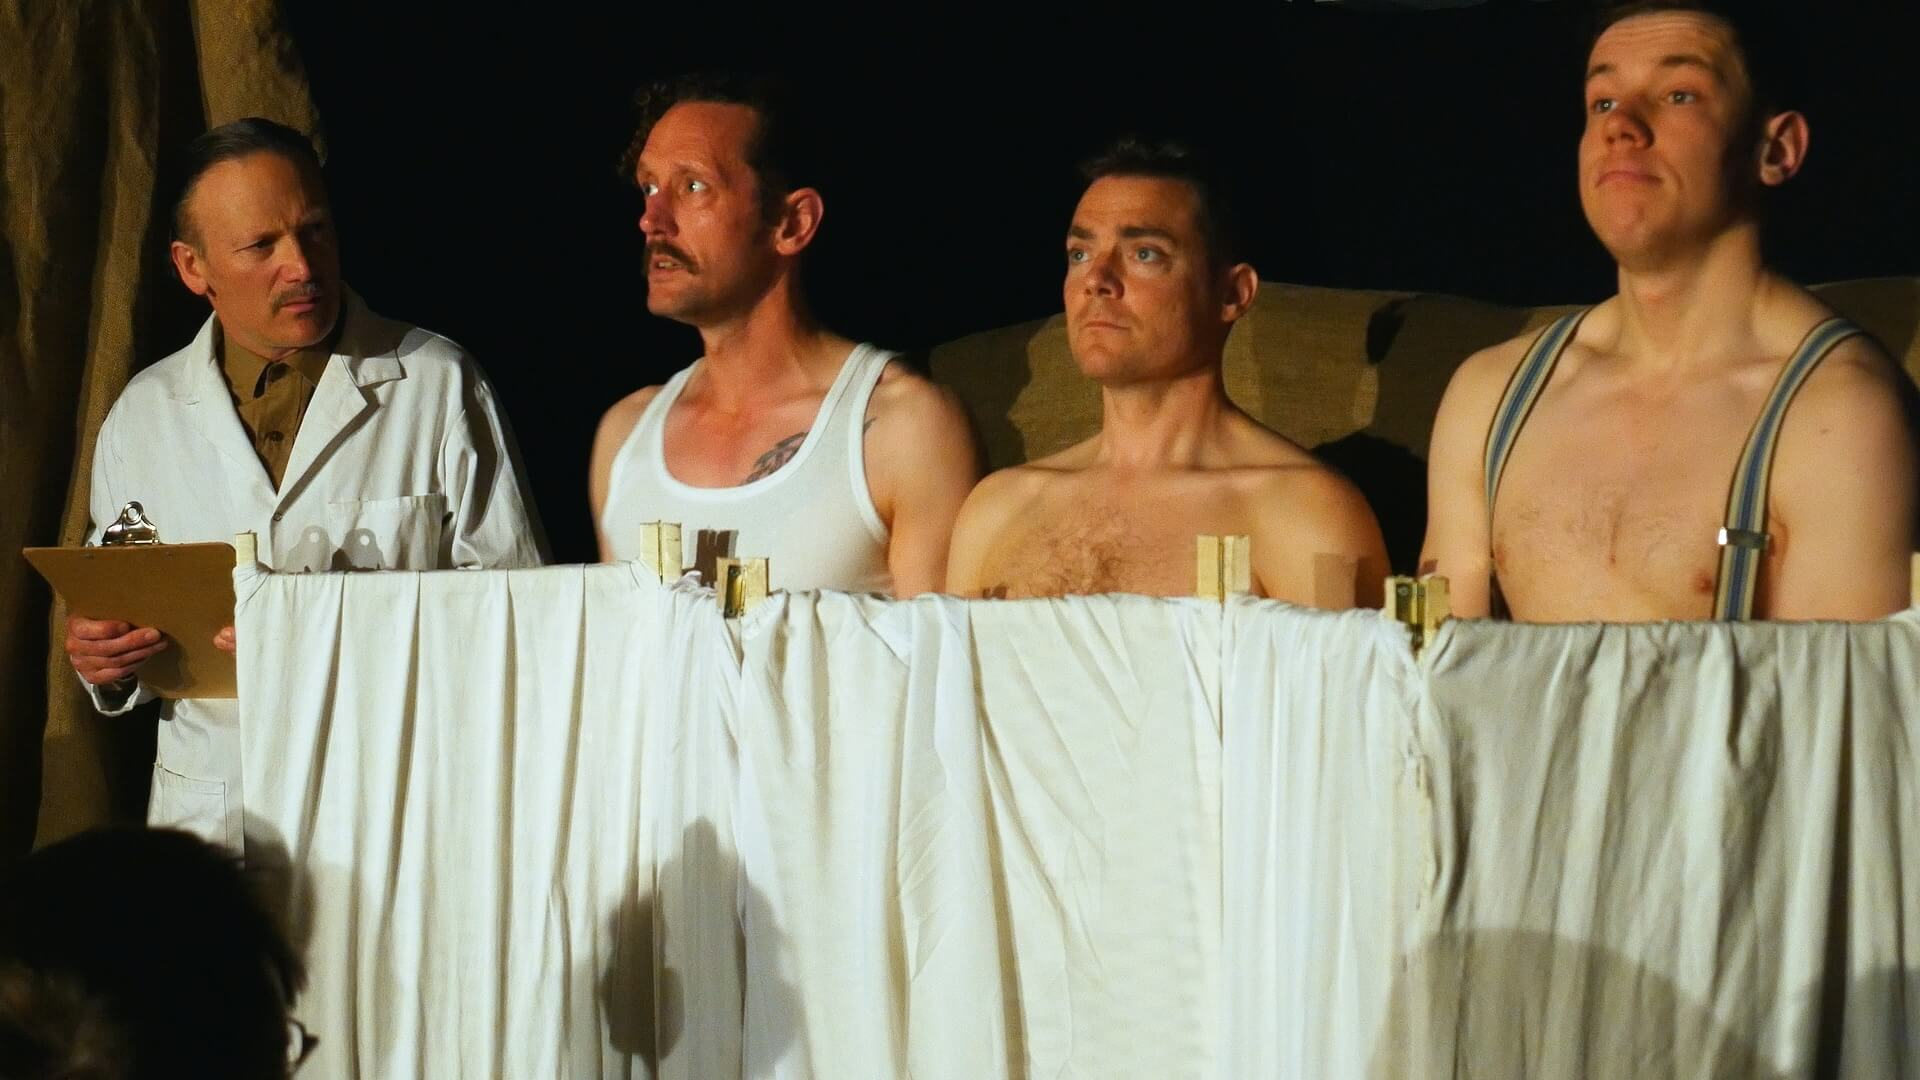 NorthSouth Theatre – Pals - Wednesday September 19th